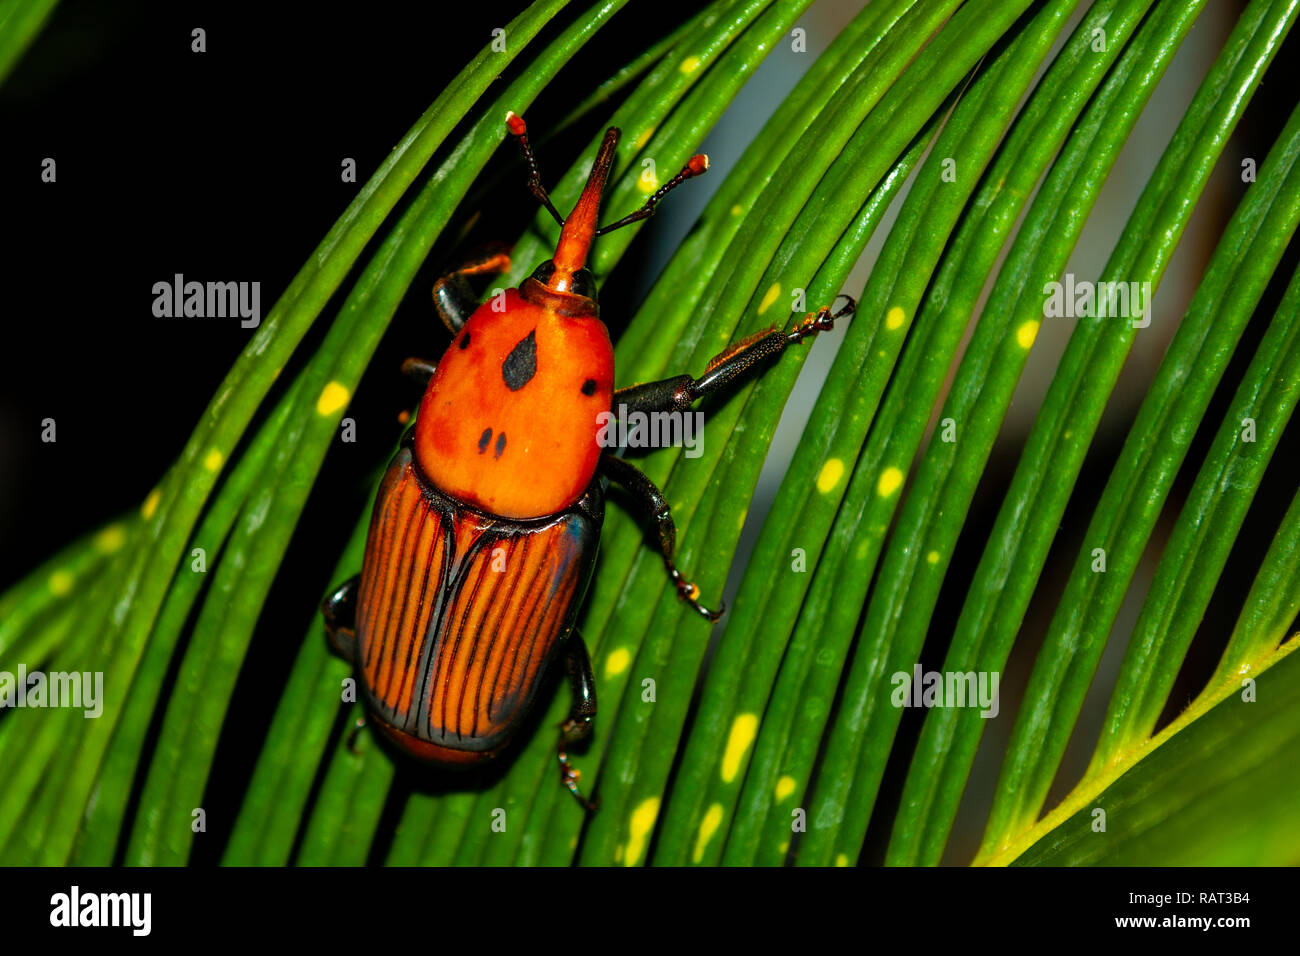 Red awl, taken in the garden, resting on a palm tree, whole - Stock Image